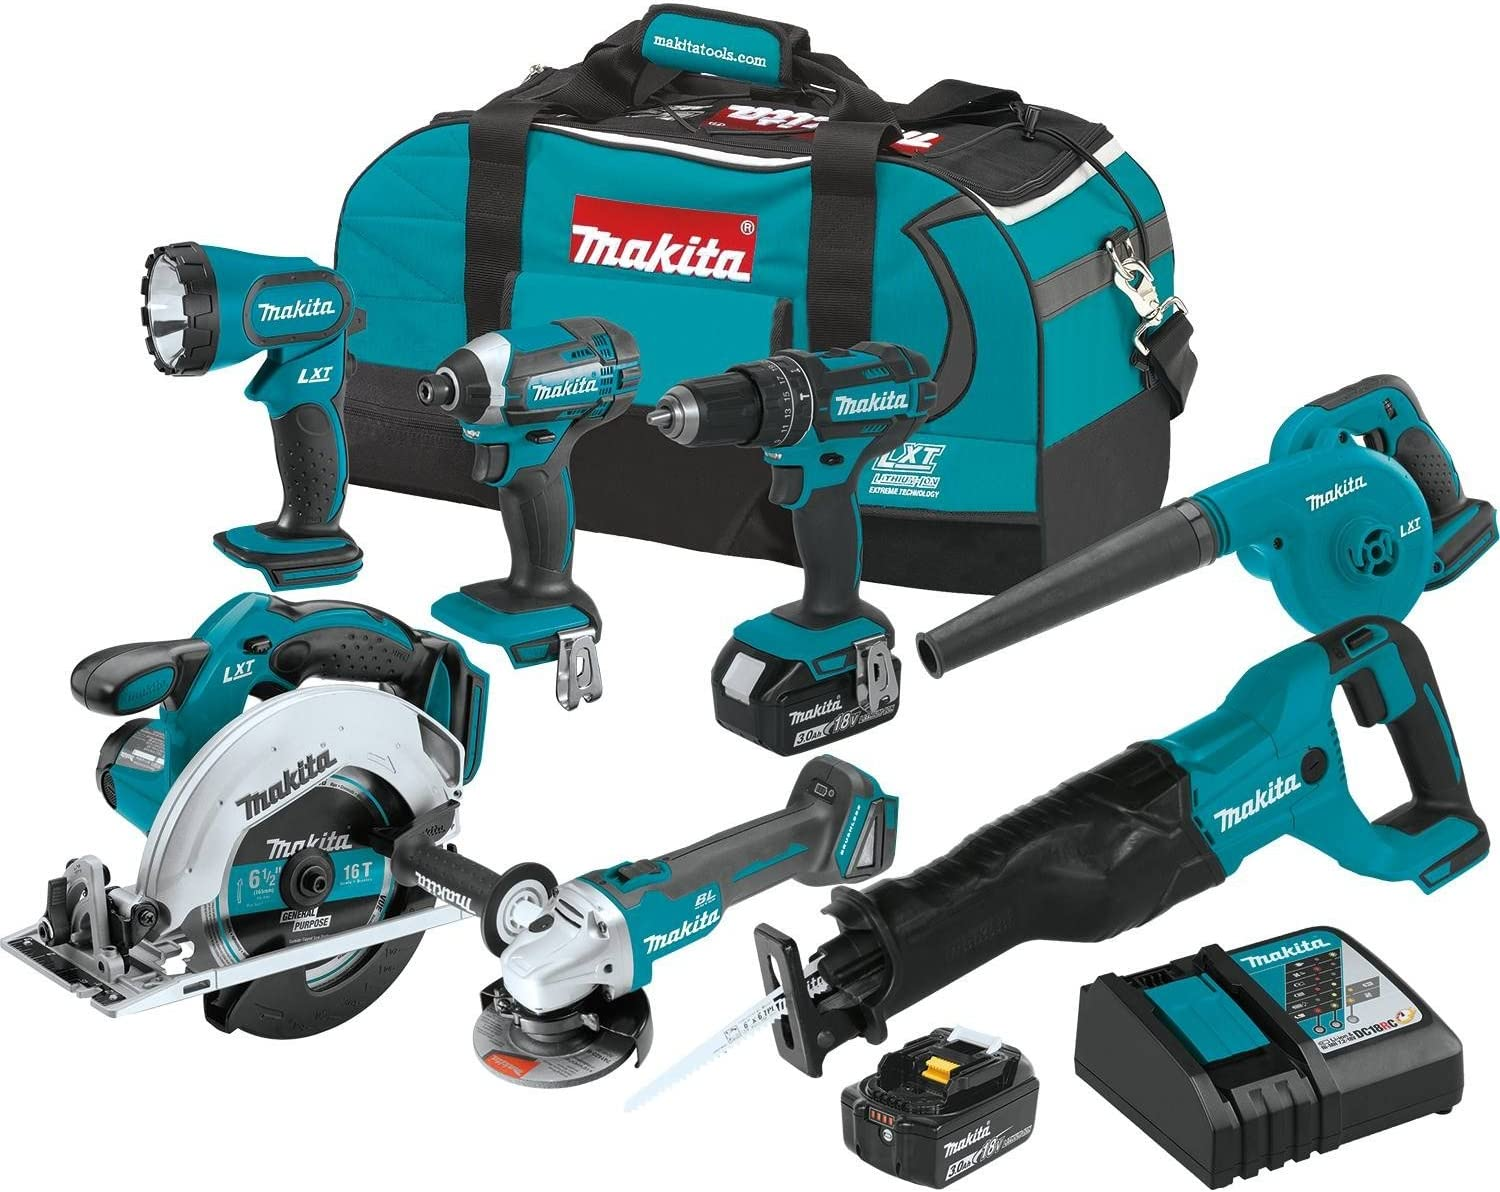 Makita XT706 3.0Ah 18V LXT Lithium-Ion Cordless Combo Kit 7 Piece